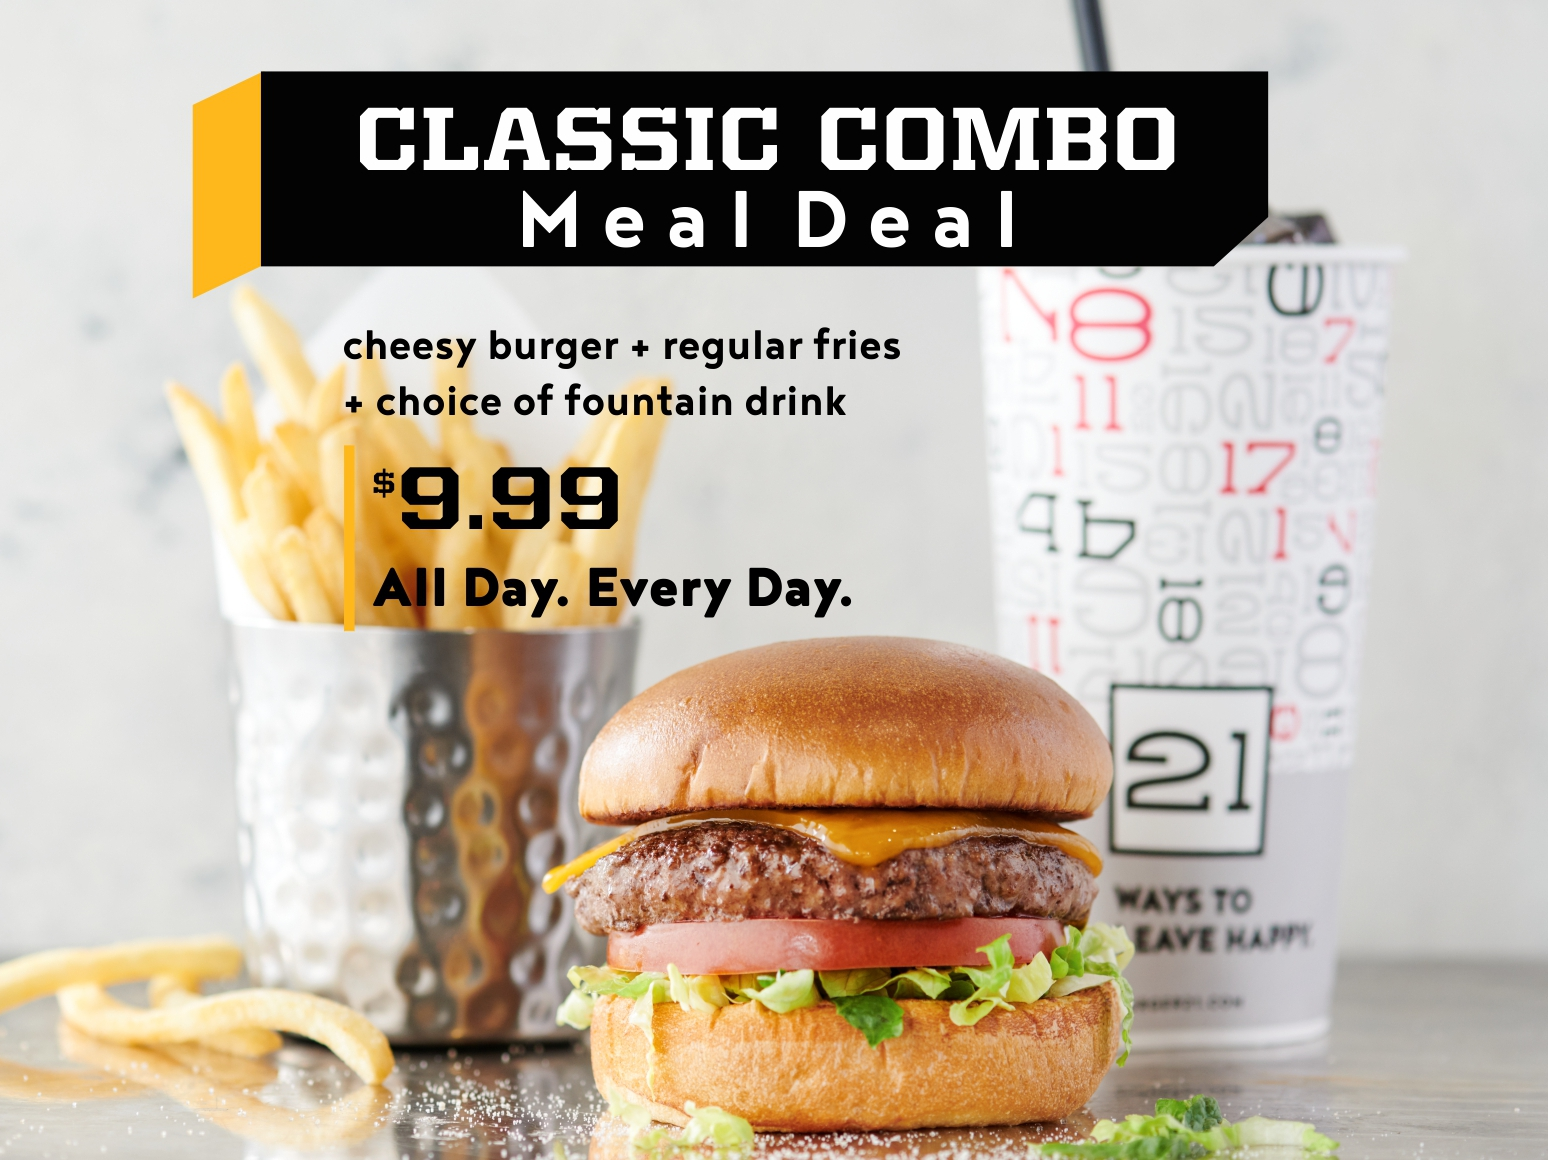 Classic Combo Meal Deal!